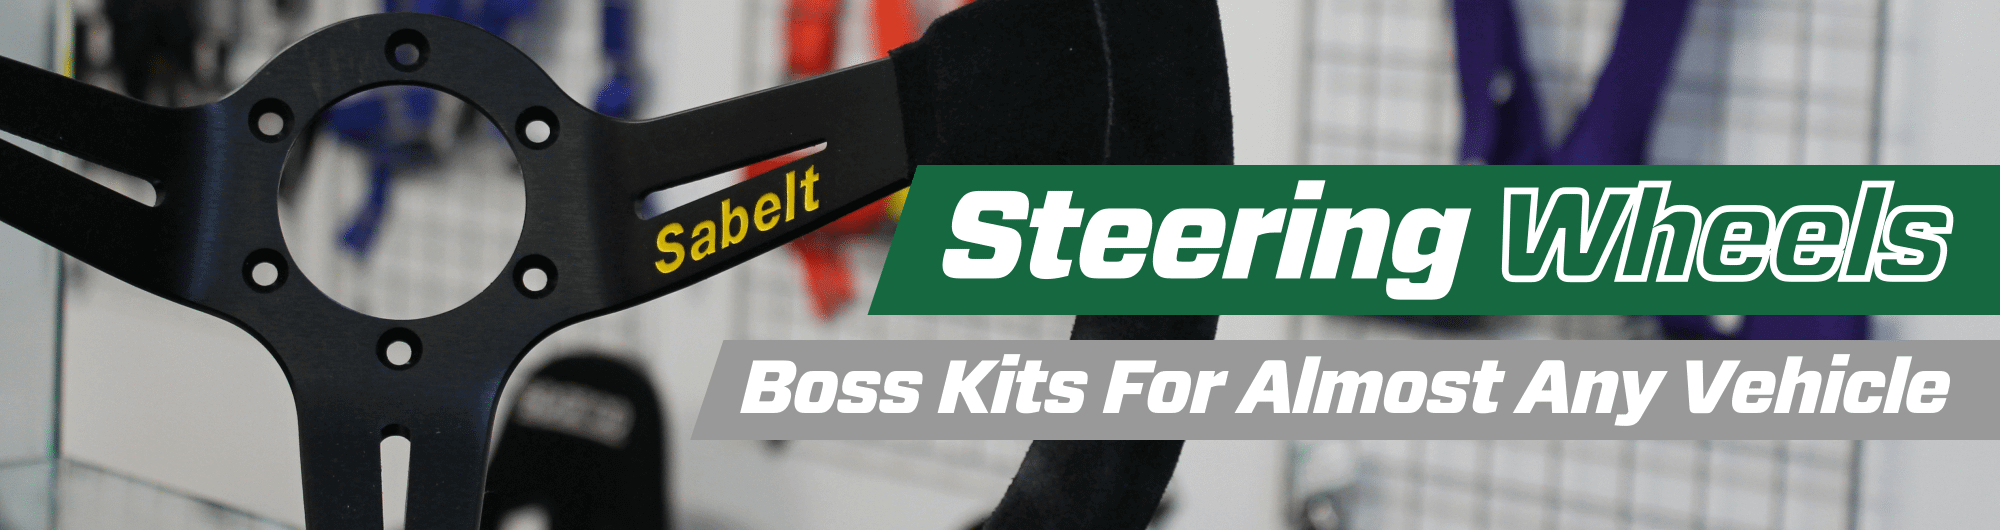 Steering Wheels – Boss Kits For Almost Any Vehicle – www.gsmotorsport.co.uk Hero Image – October 2017